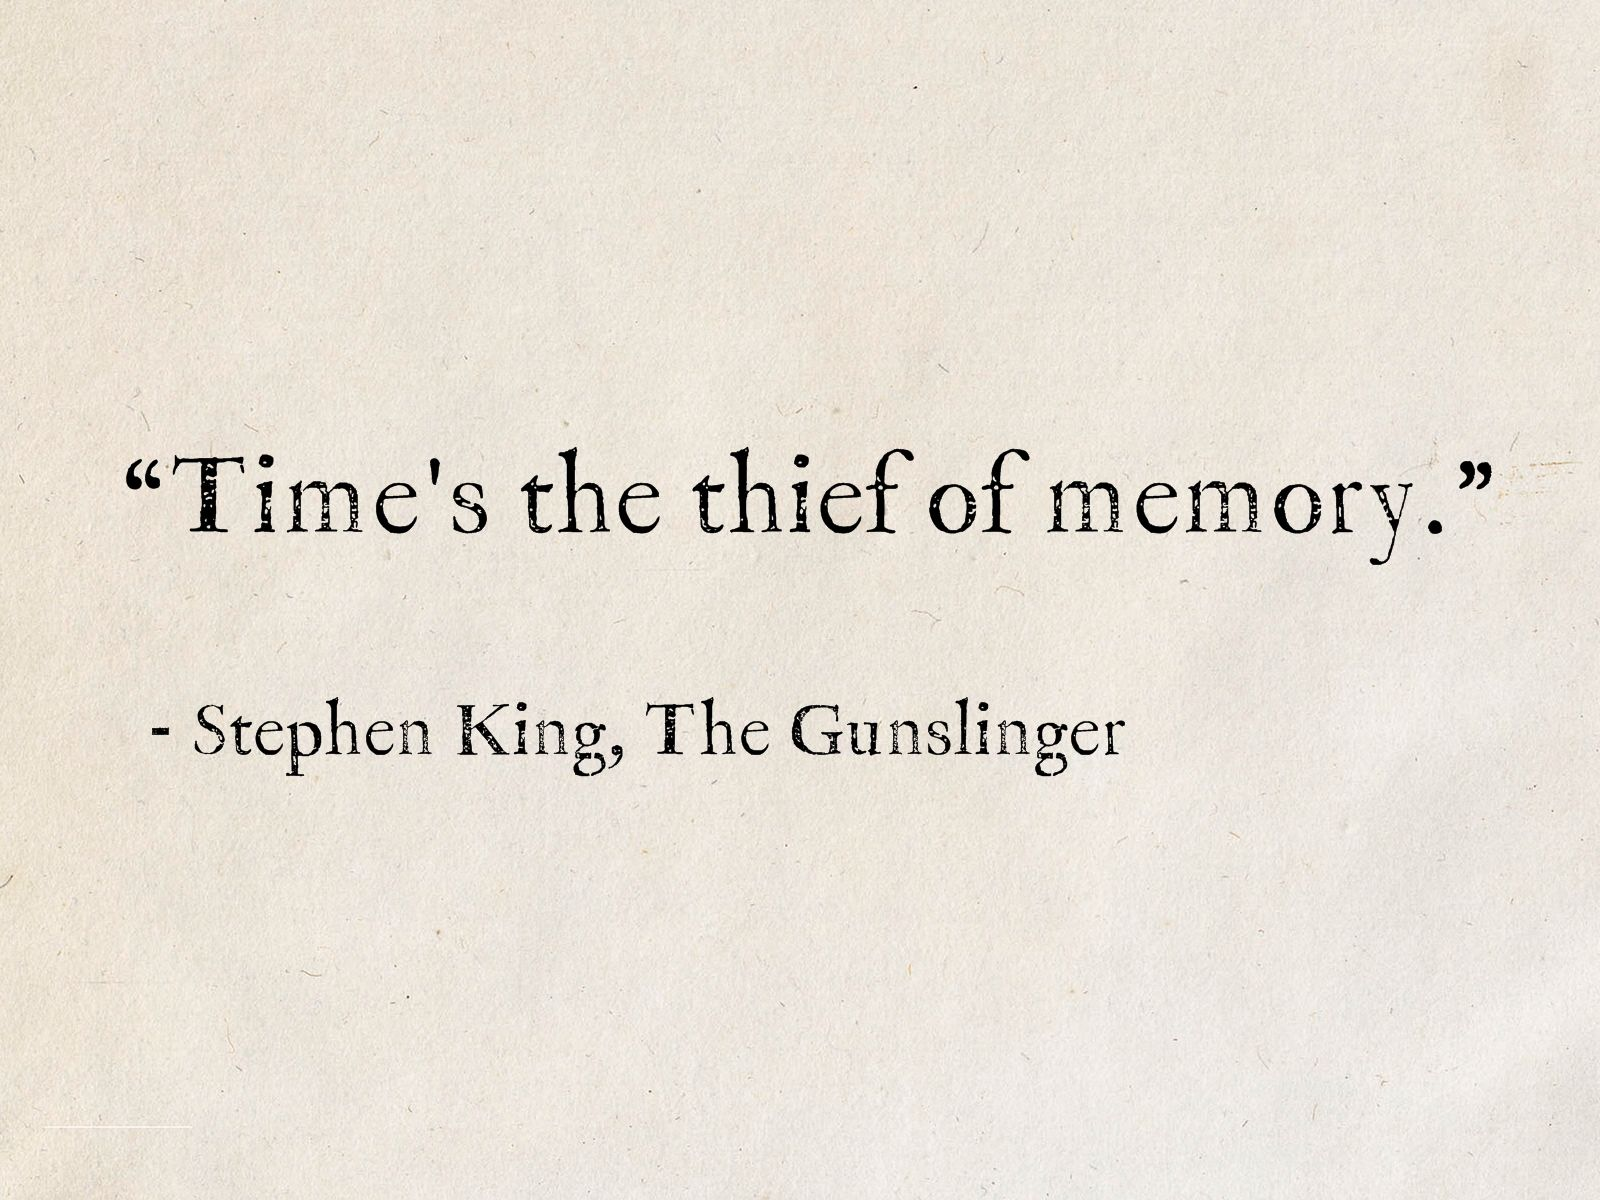 100 Best Quotes From Stephen King's Books | THE ROCKLE